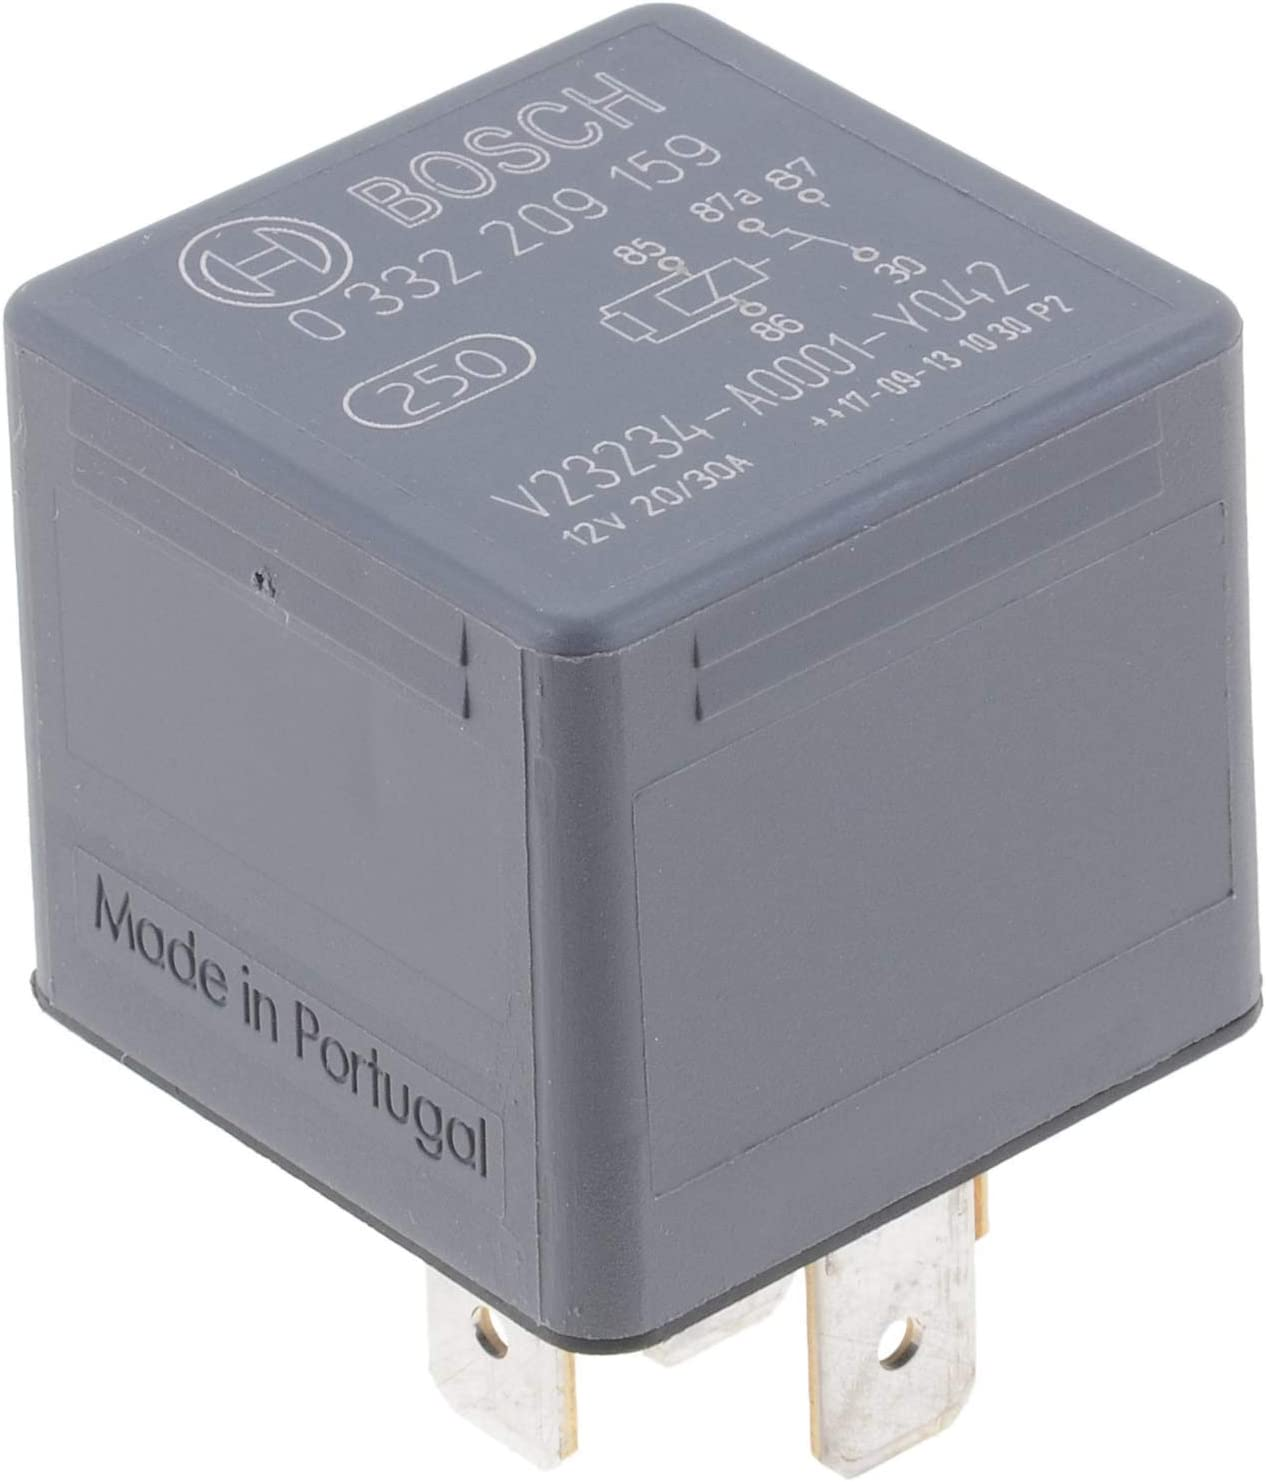 Bosch Automotive 5 Pins 12 V 0332209159 A Changeover Special Don't miss the campaign price for a limited time 30 Mi 20